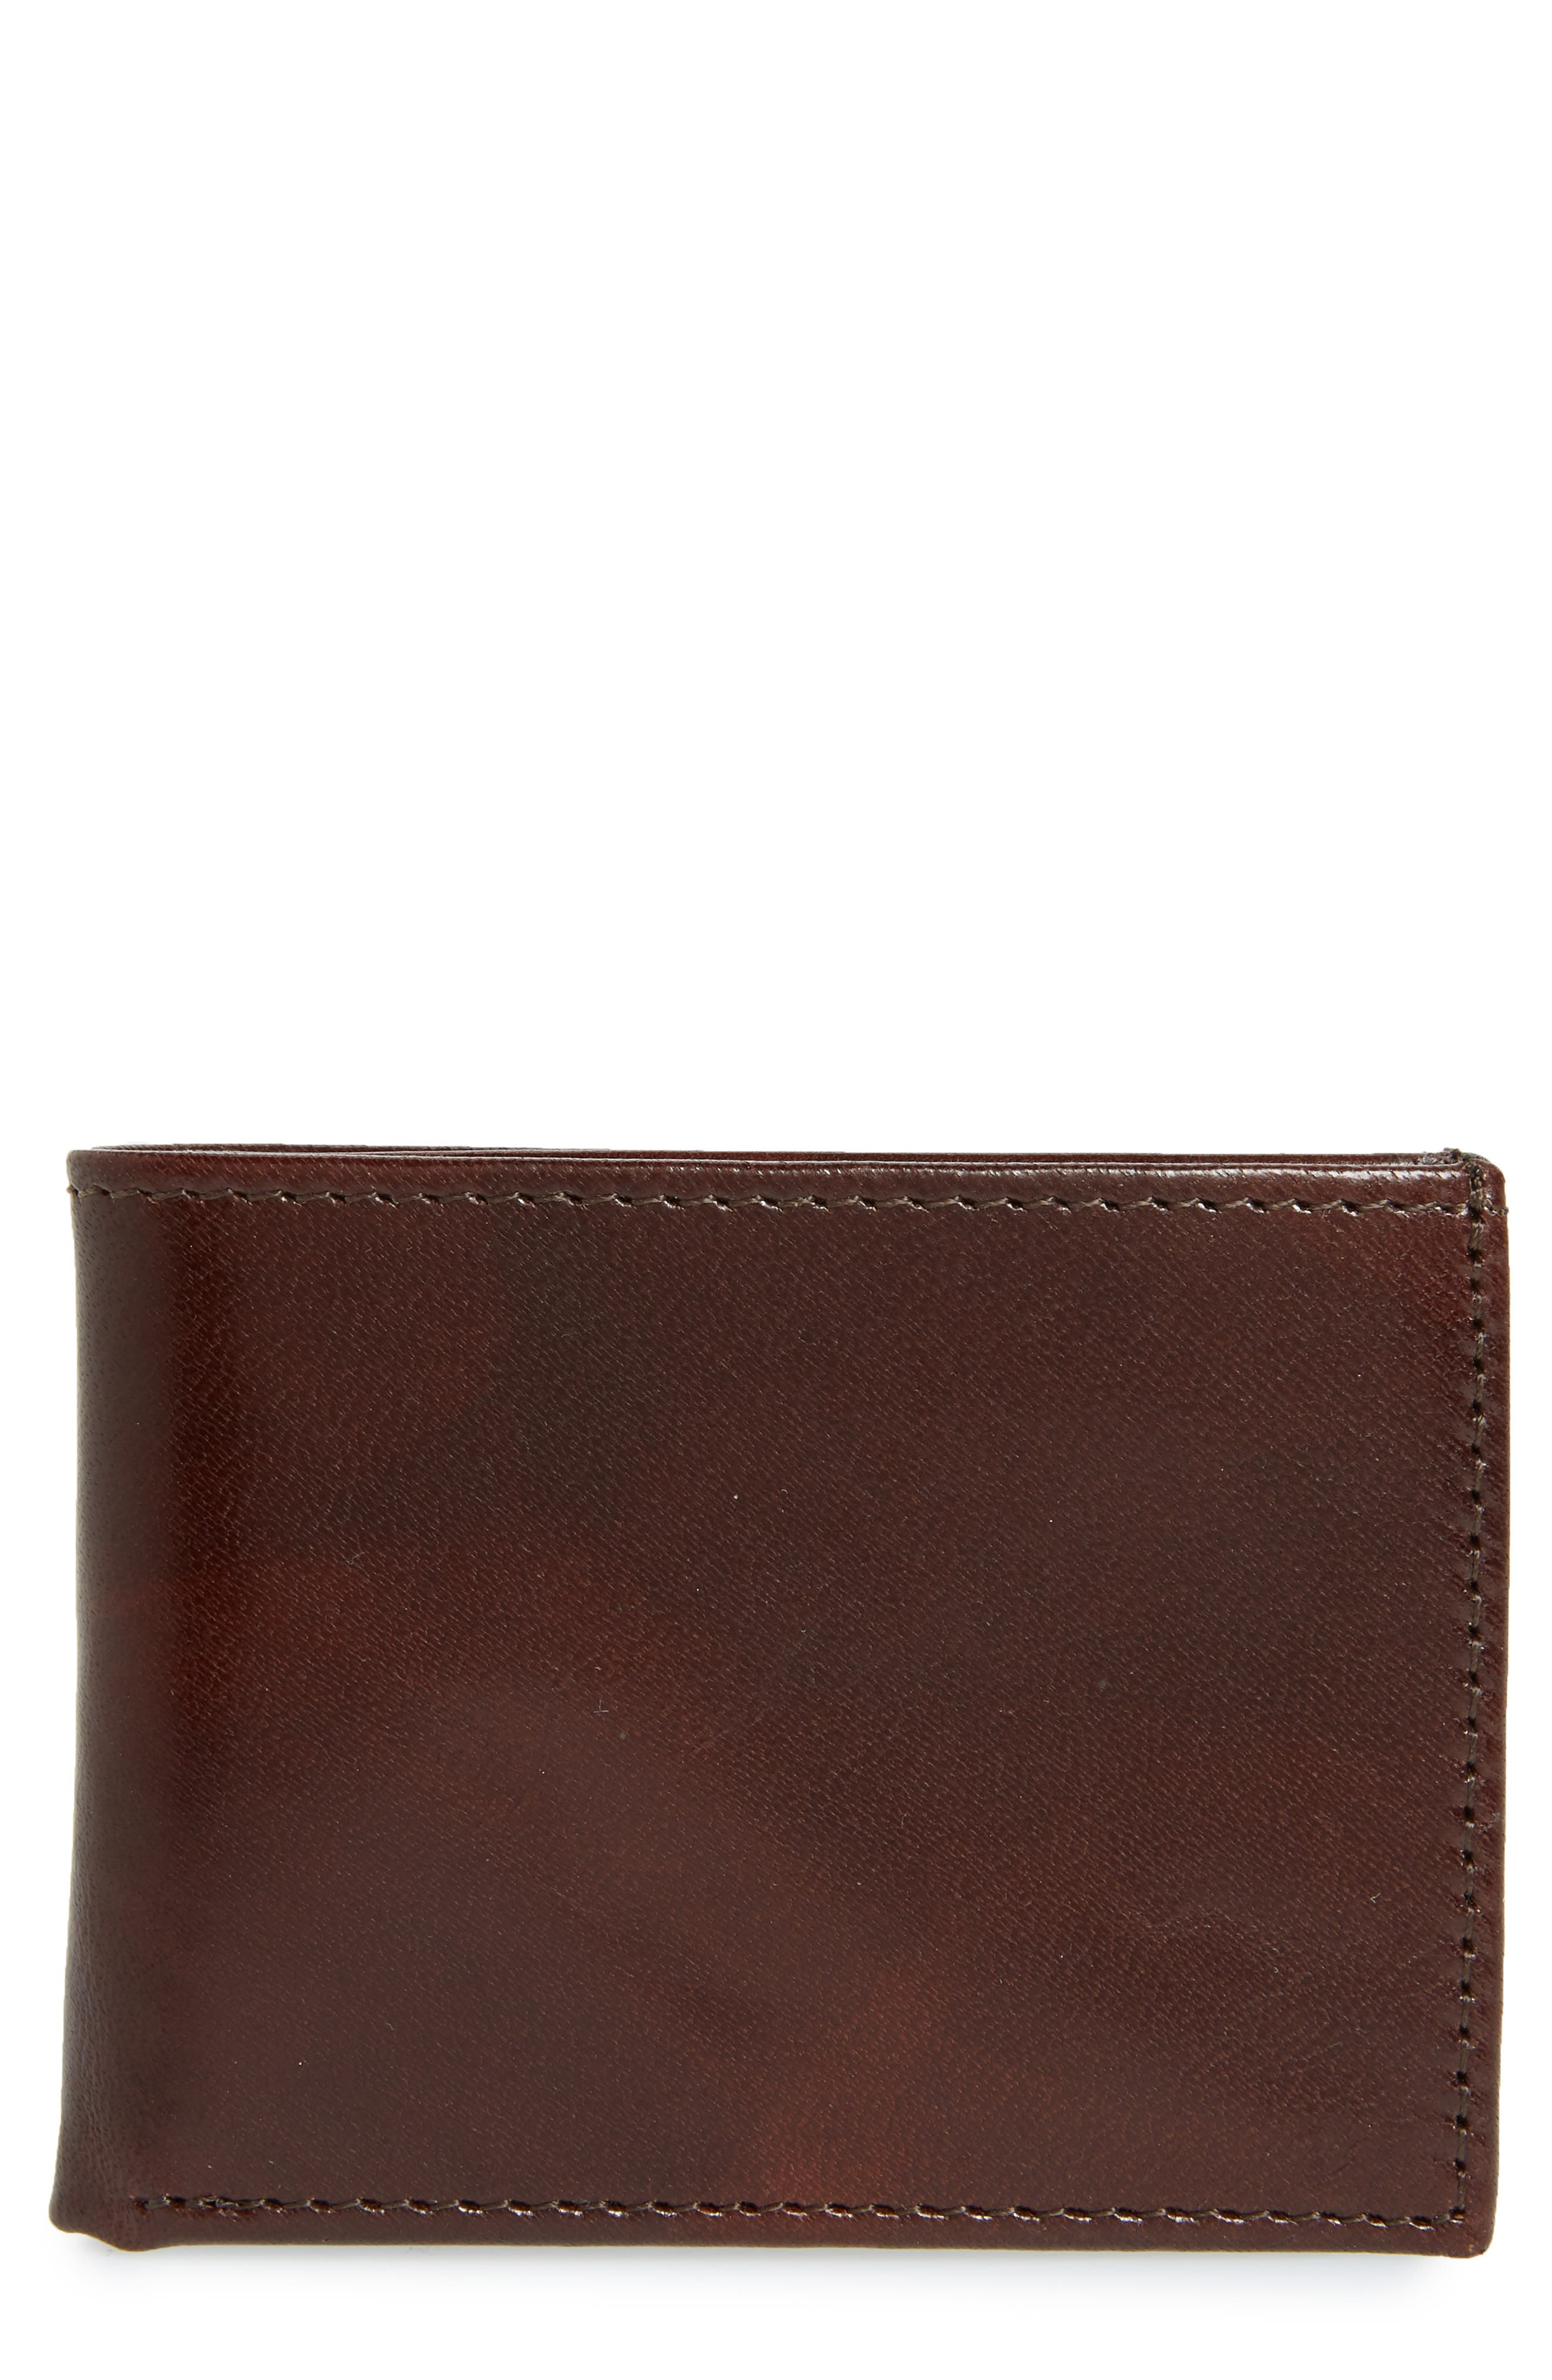 Leather Wallet,                         Main,                         color, BROWN